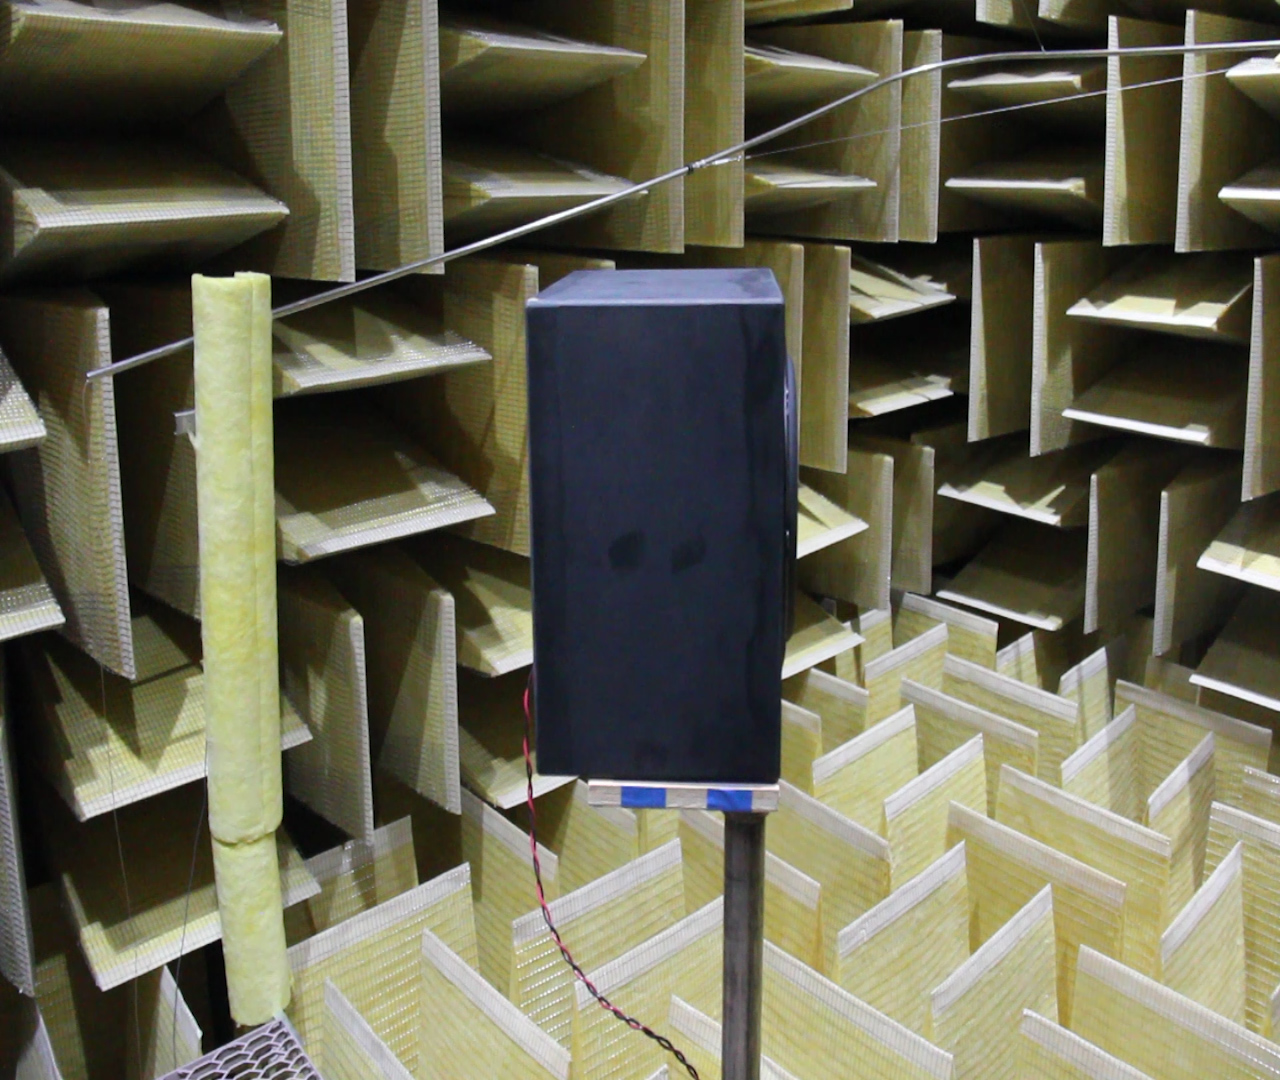 Video: Samsung's audio lab: peek behind the double-blind curtain